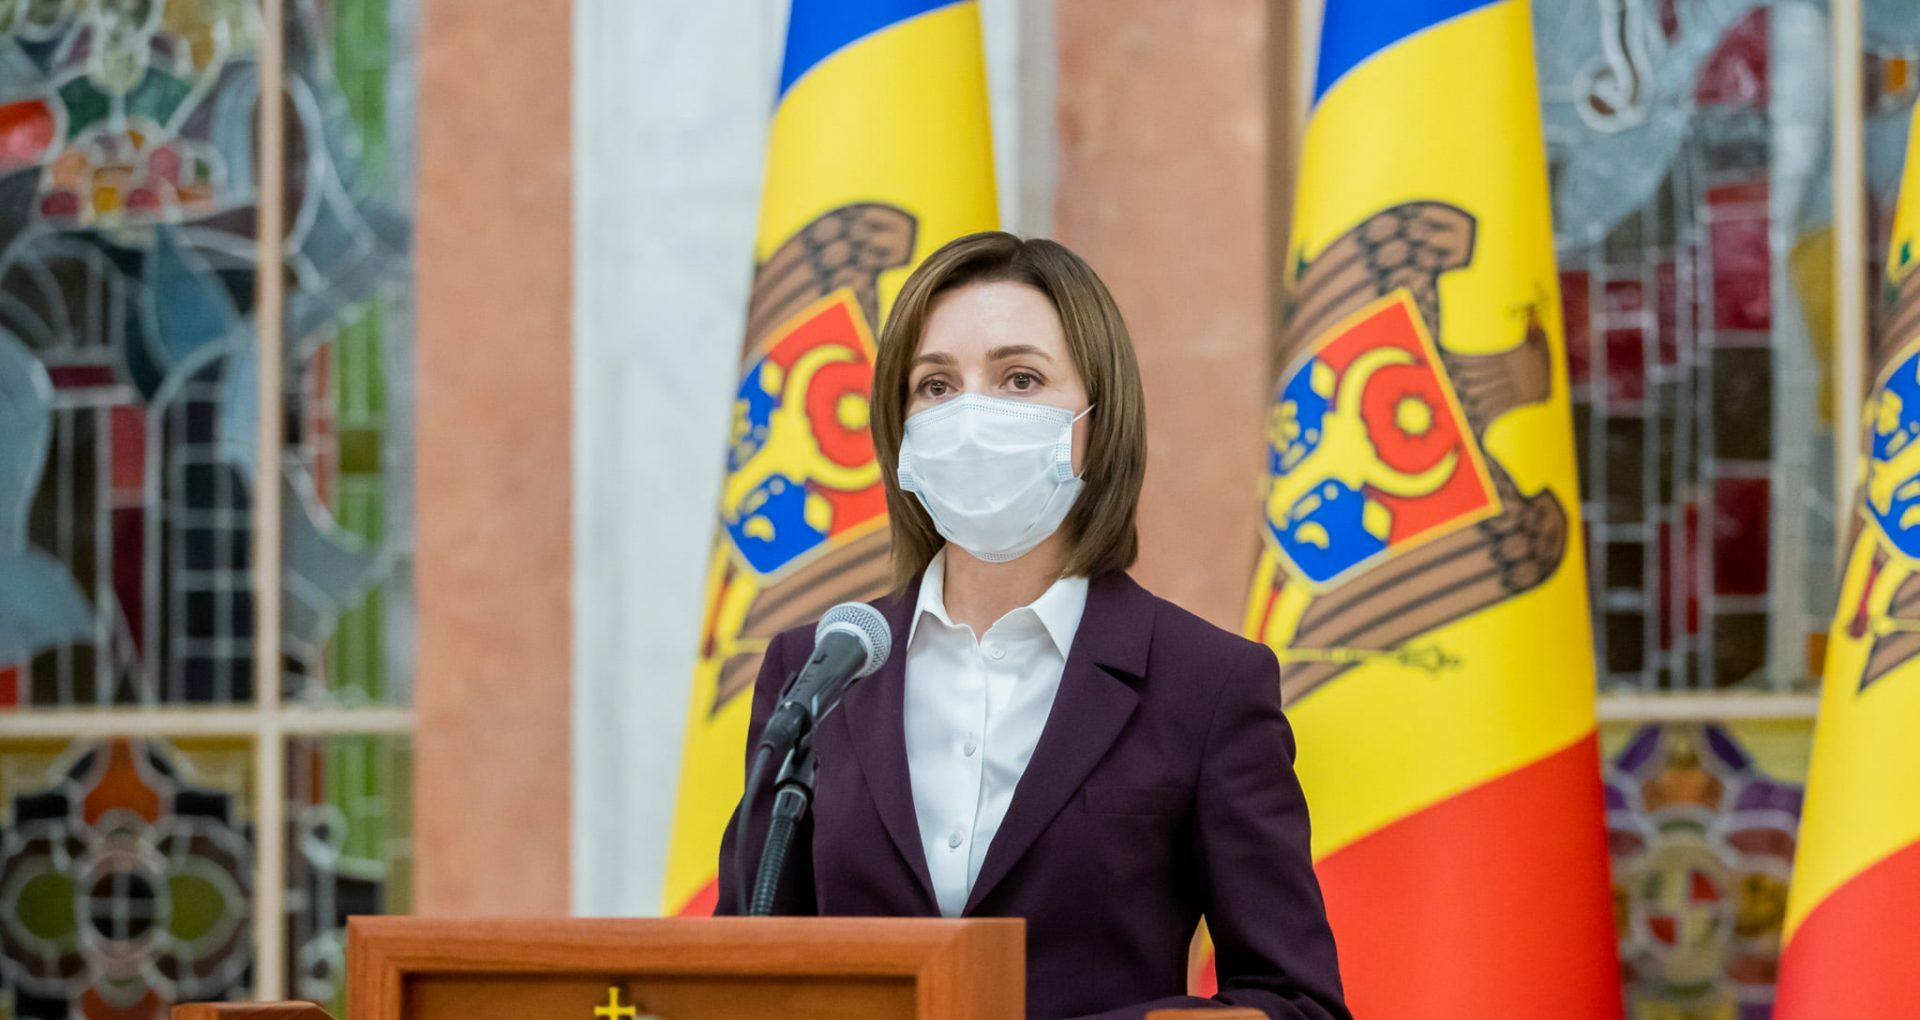 Natalia Gavriliță is the New Candidate for Prime Minister